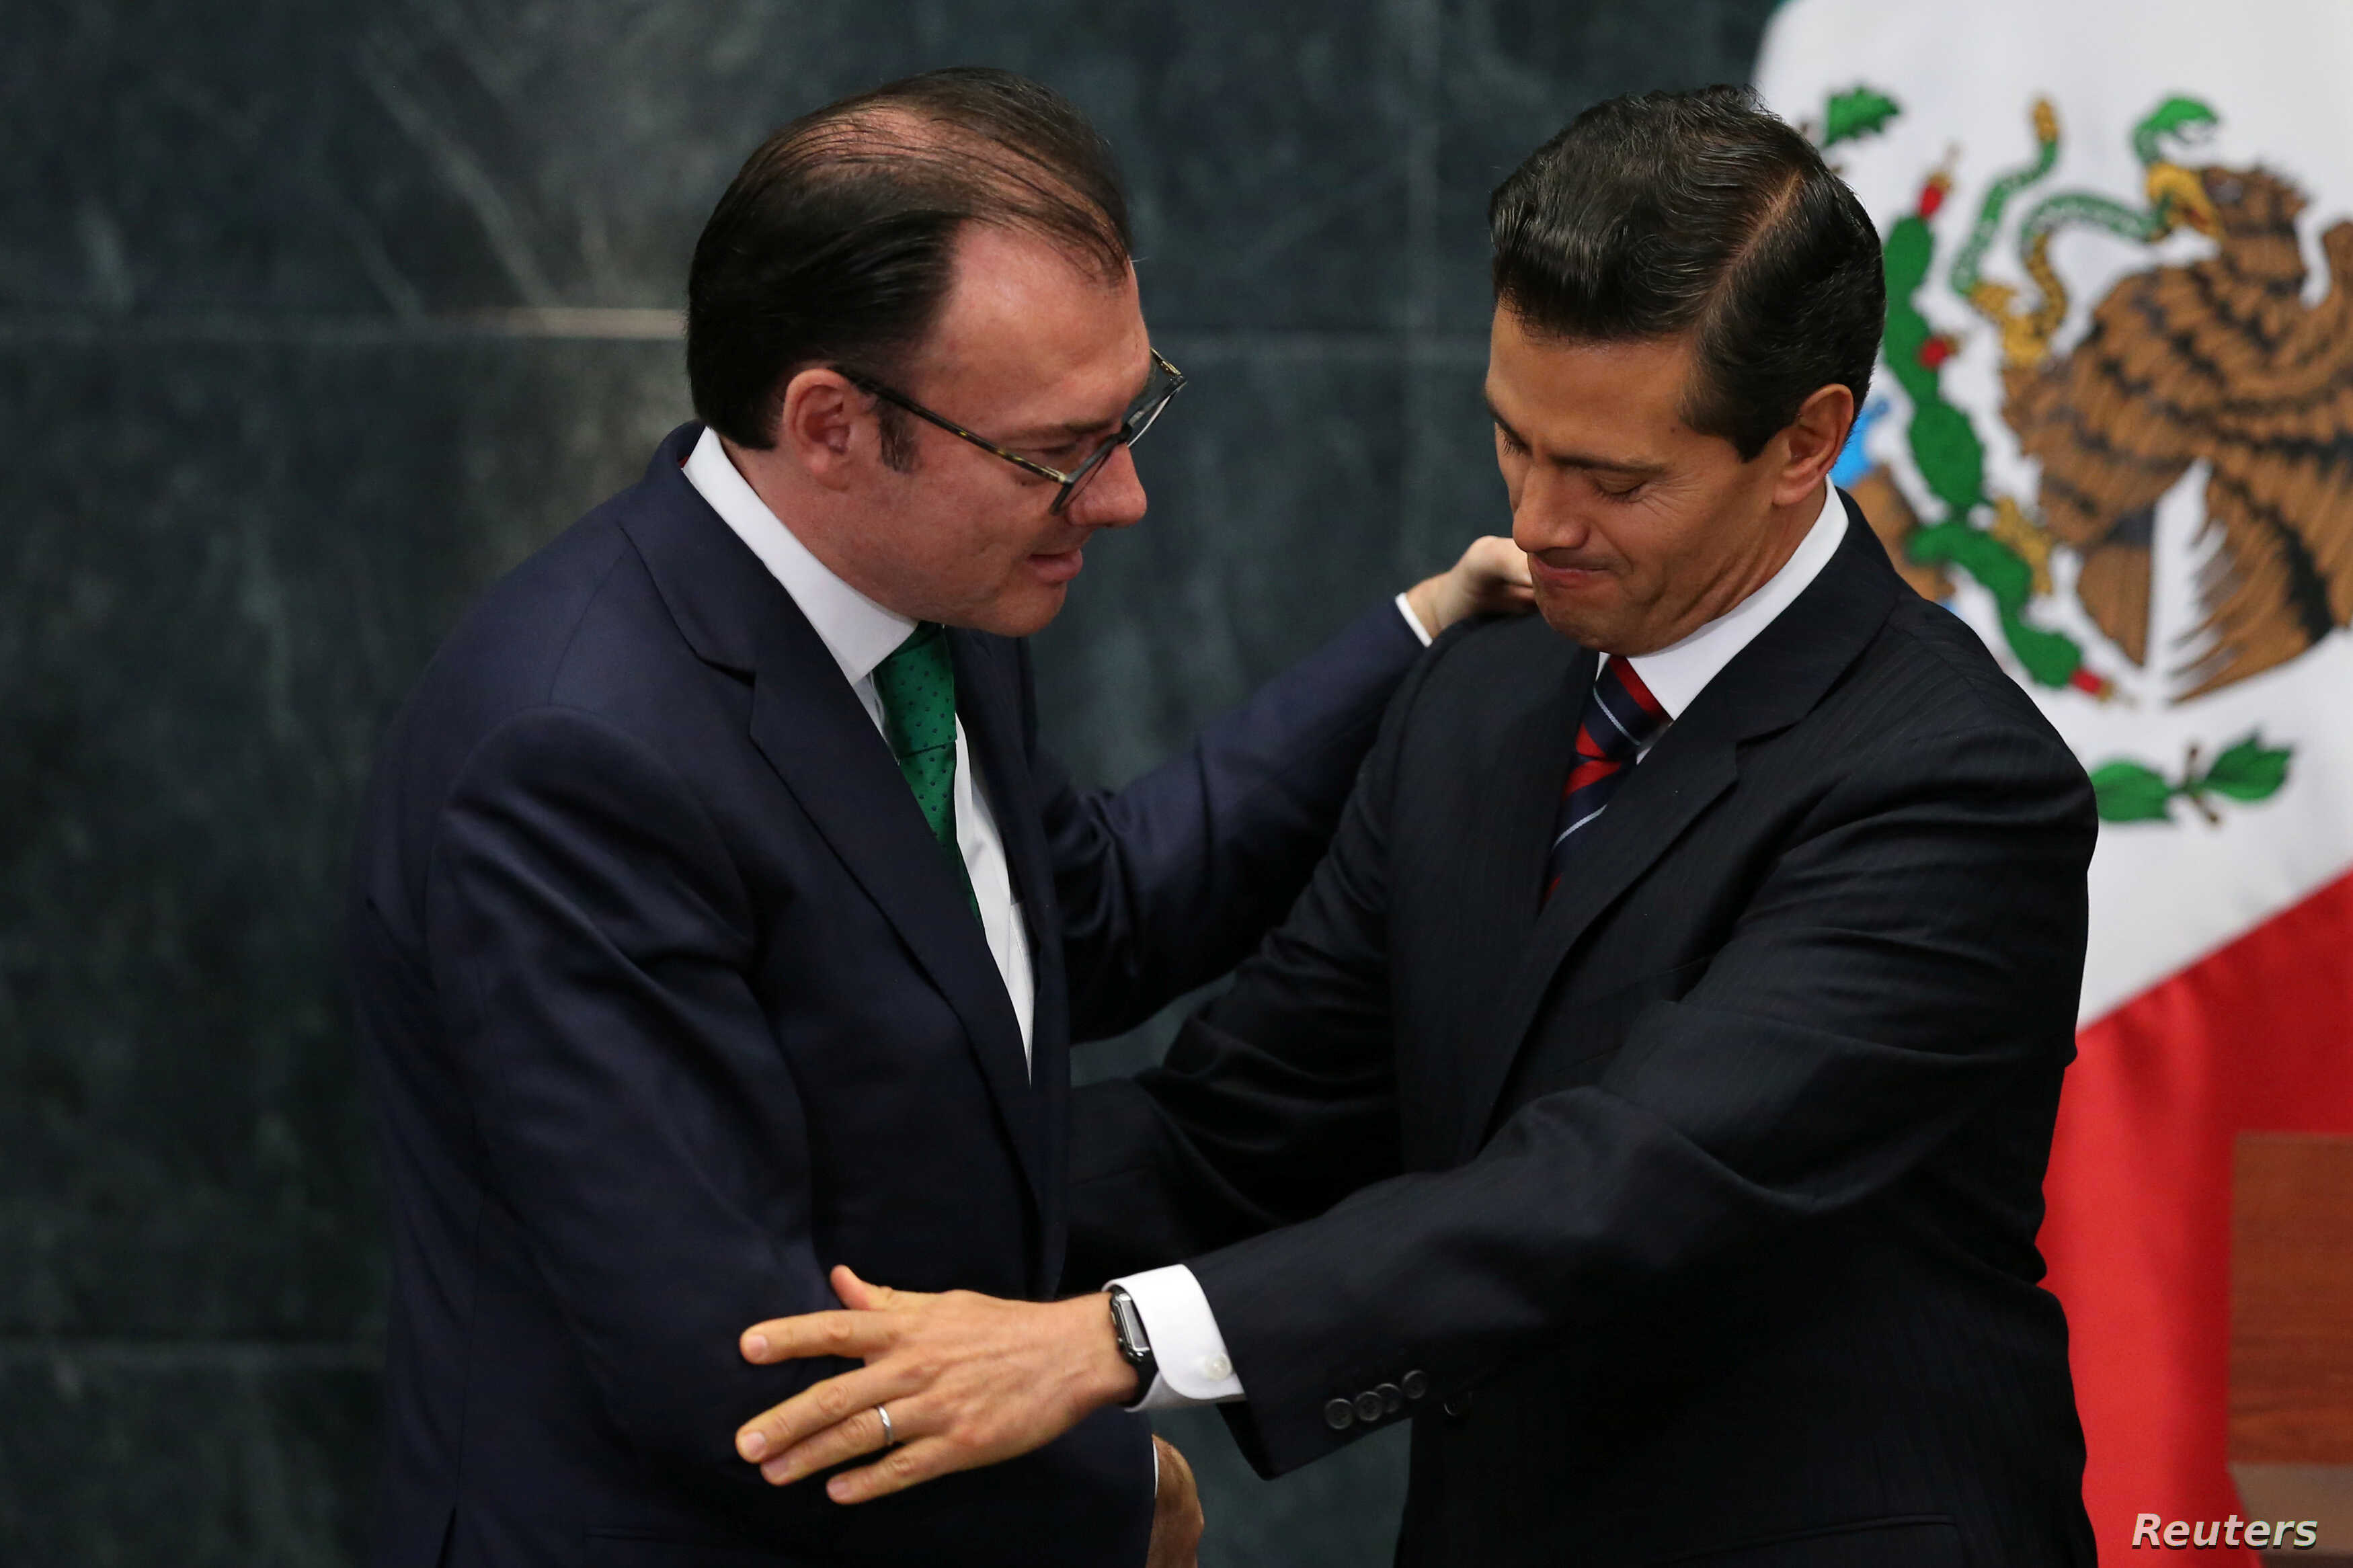 Mexico's President Enrique Pena Nieto shakes hands with former Finance Minister Luis Videgaray during the announcement of new cabinet members at Los Pinos presidential residence in Mexico City, Mexico, Sept. 7, 2016.